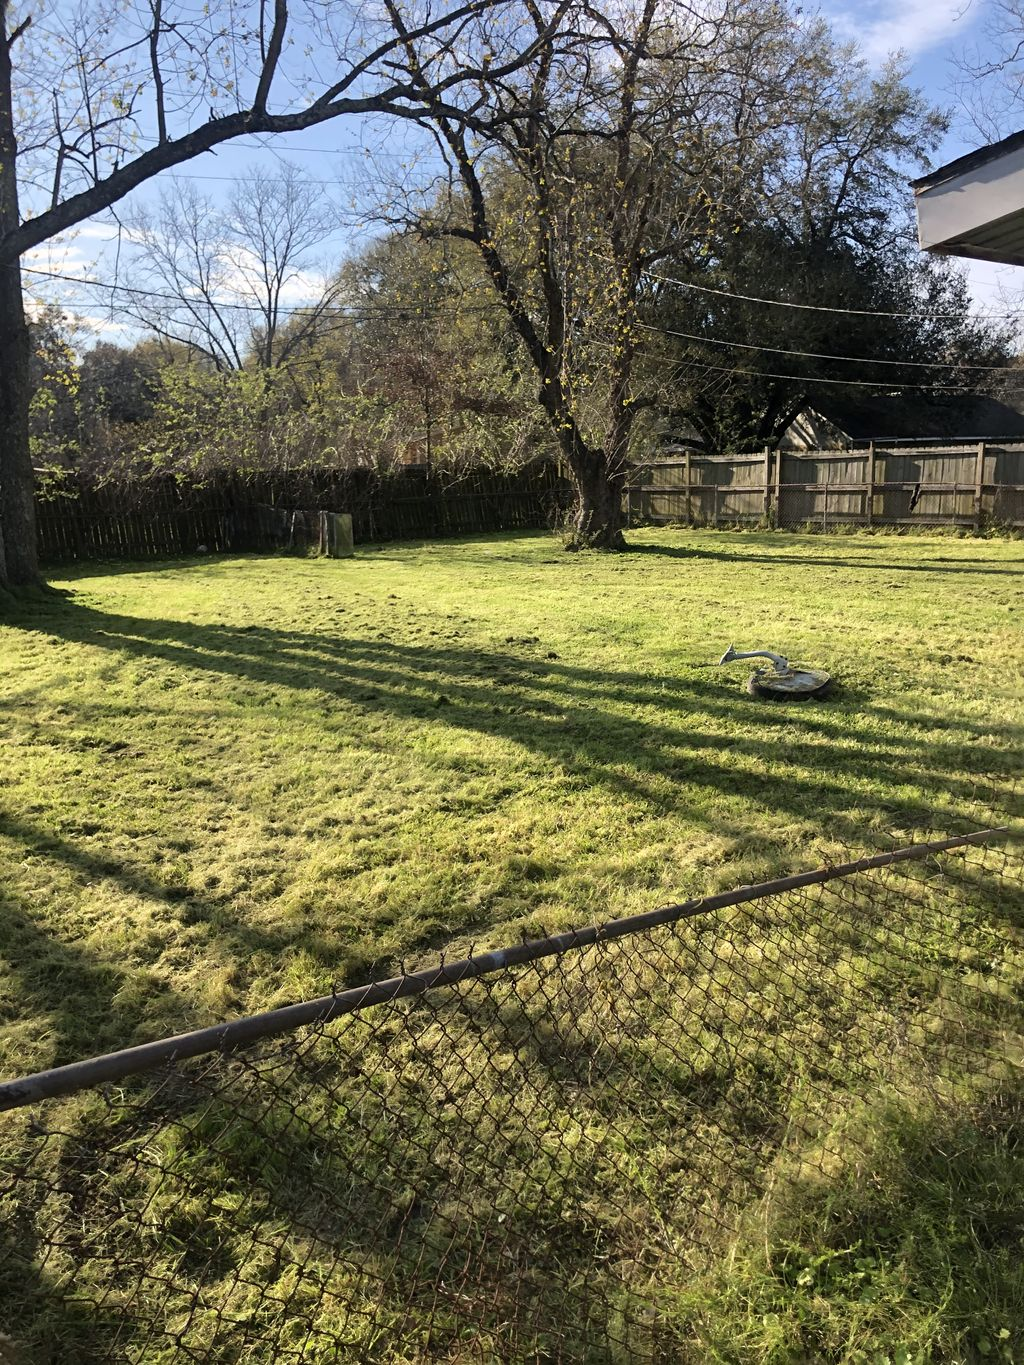 Lawn mowing and trimming